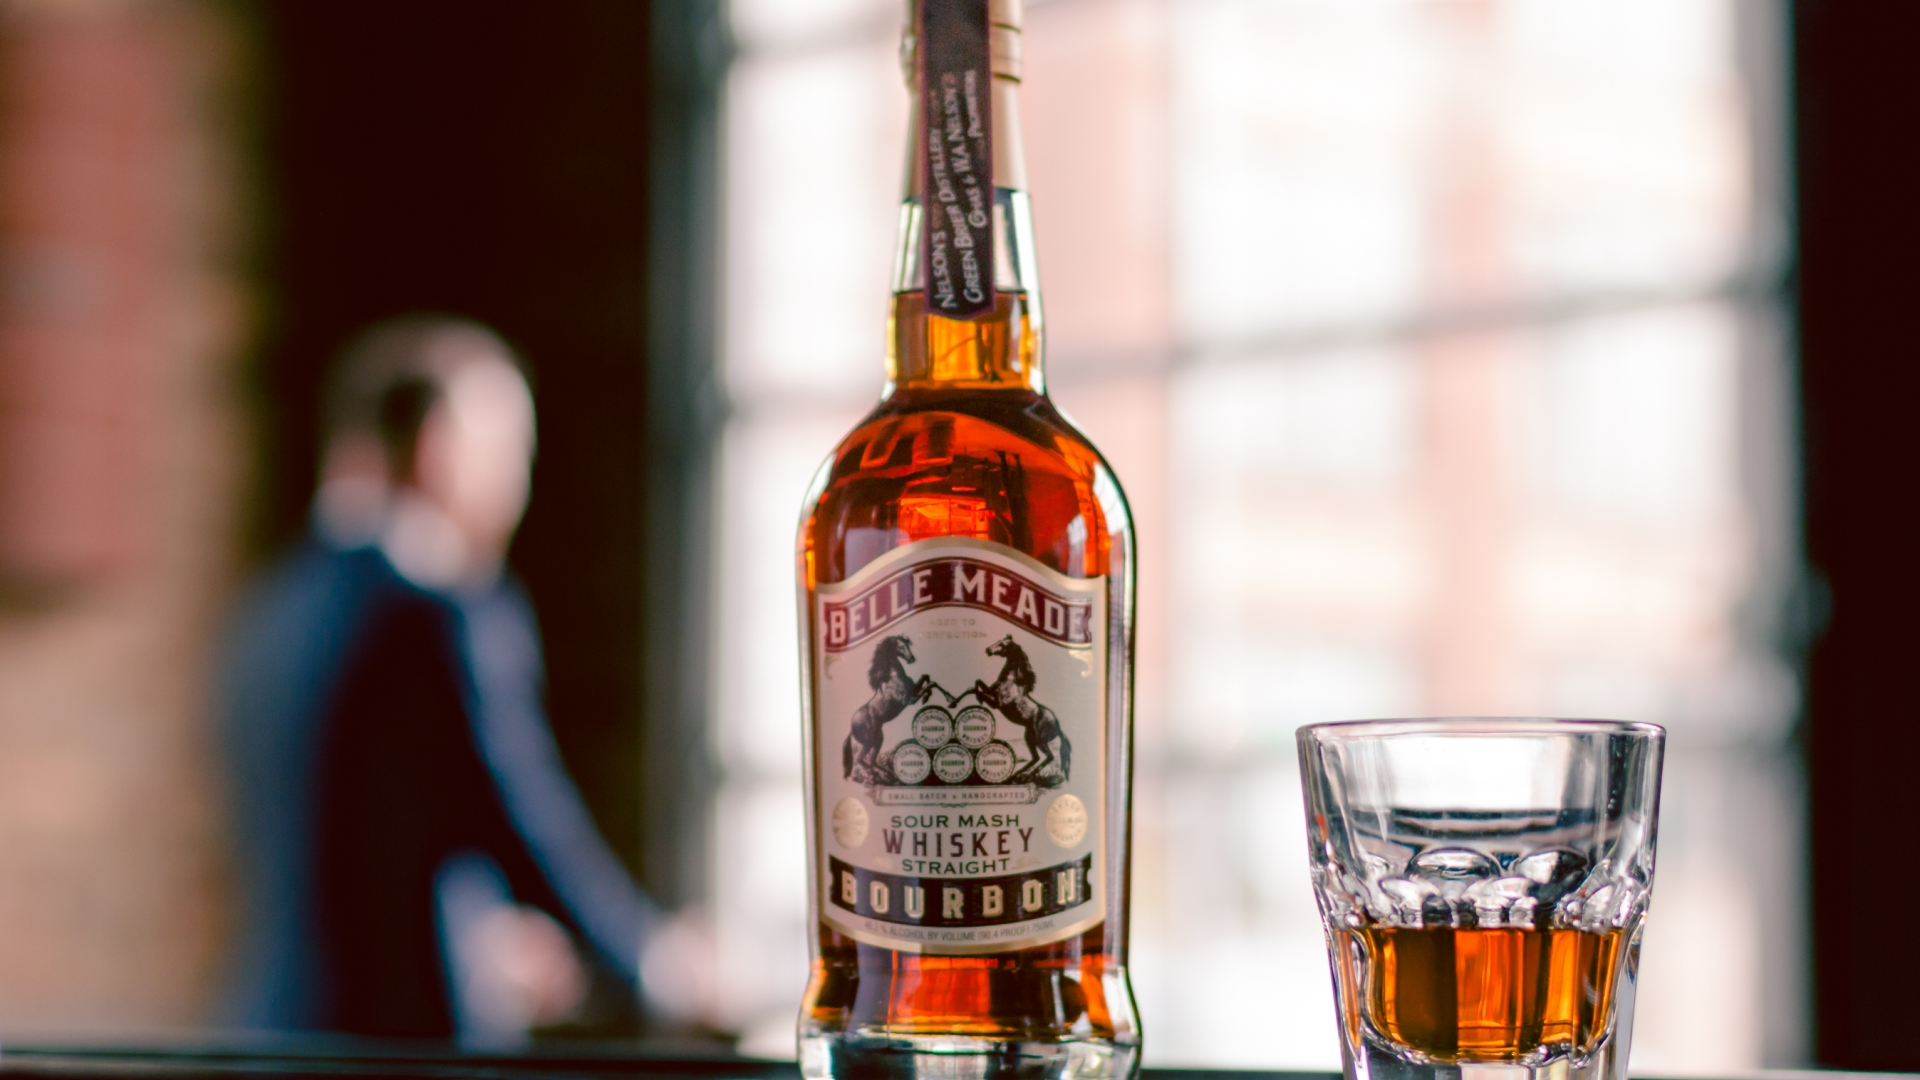 Belle Meade Sherry Cask Bourbon Review - Whiskey Reviewer